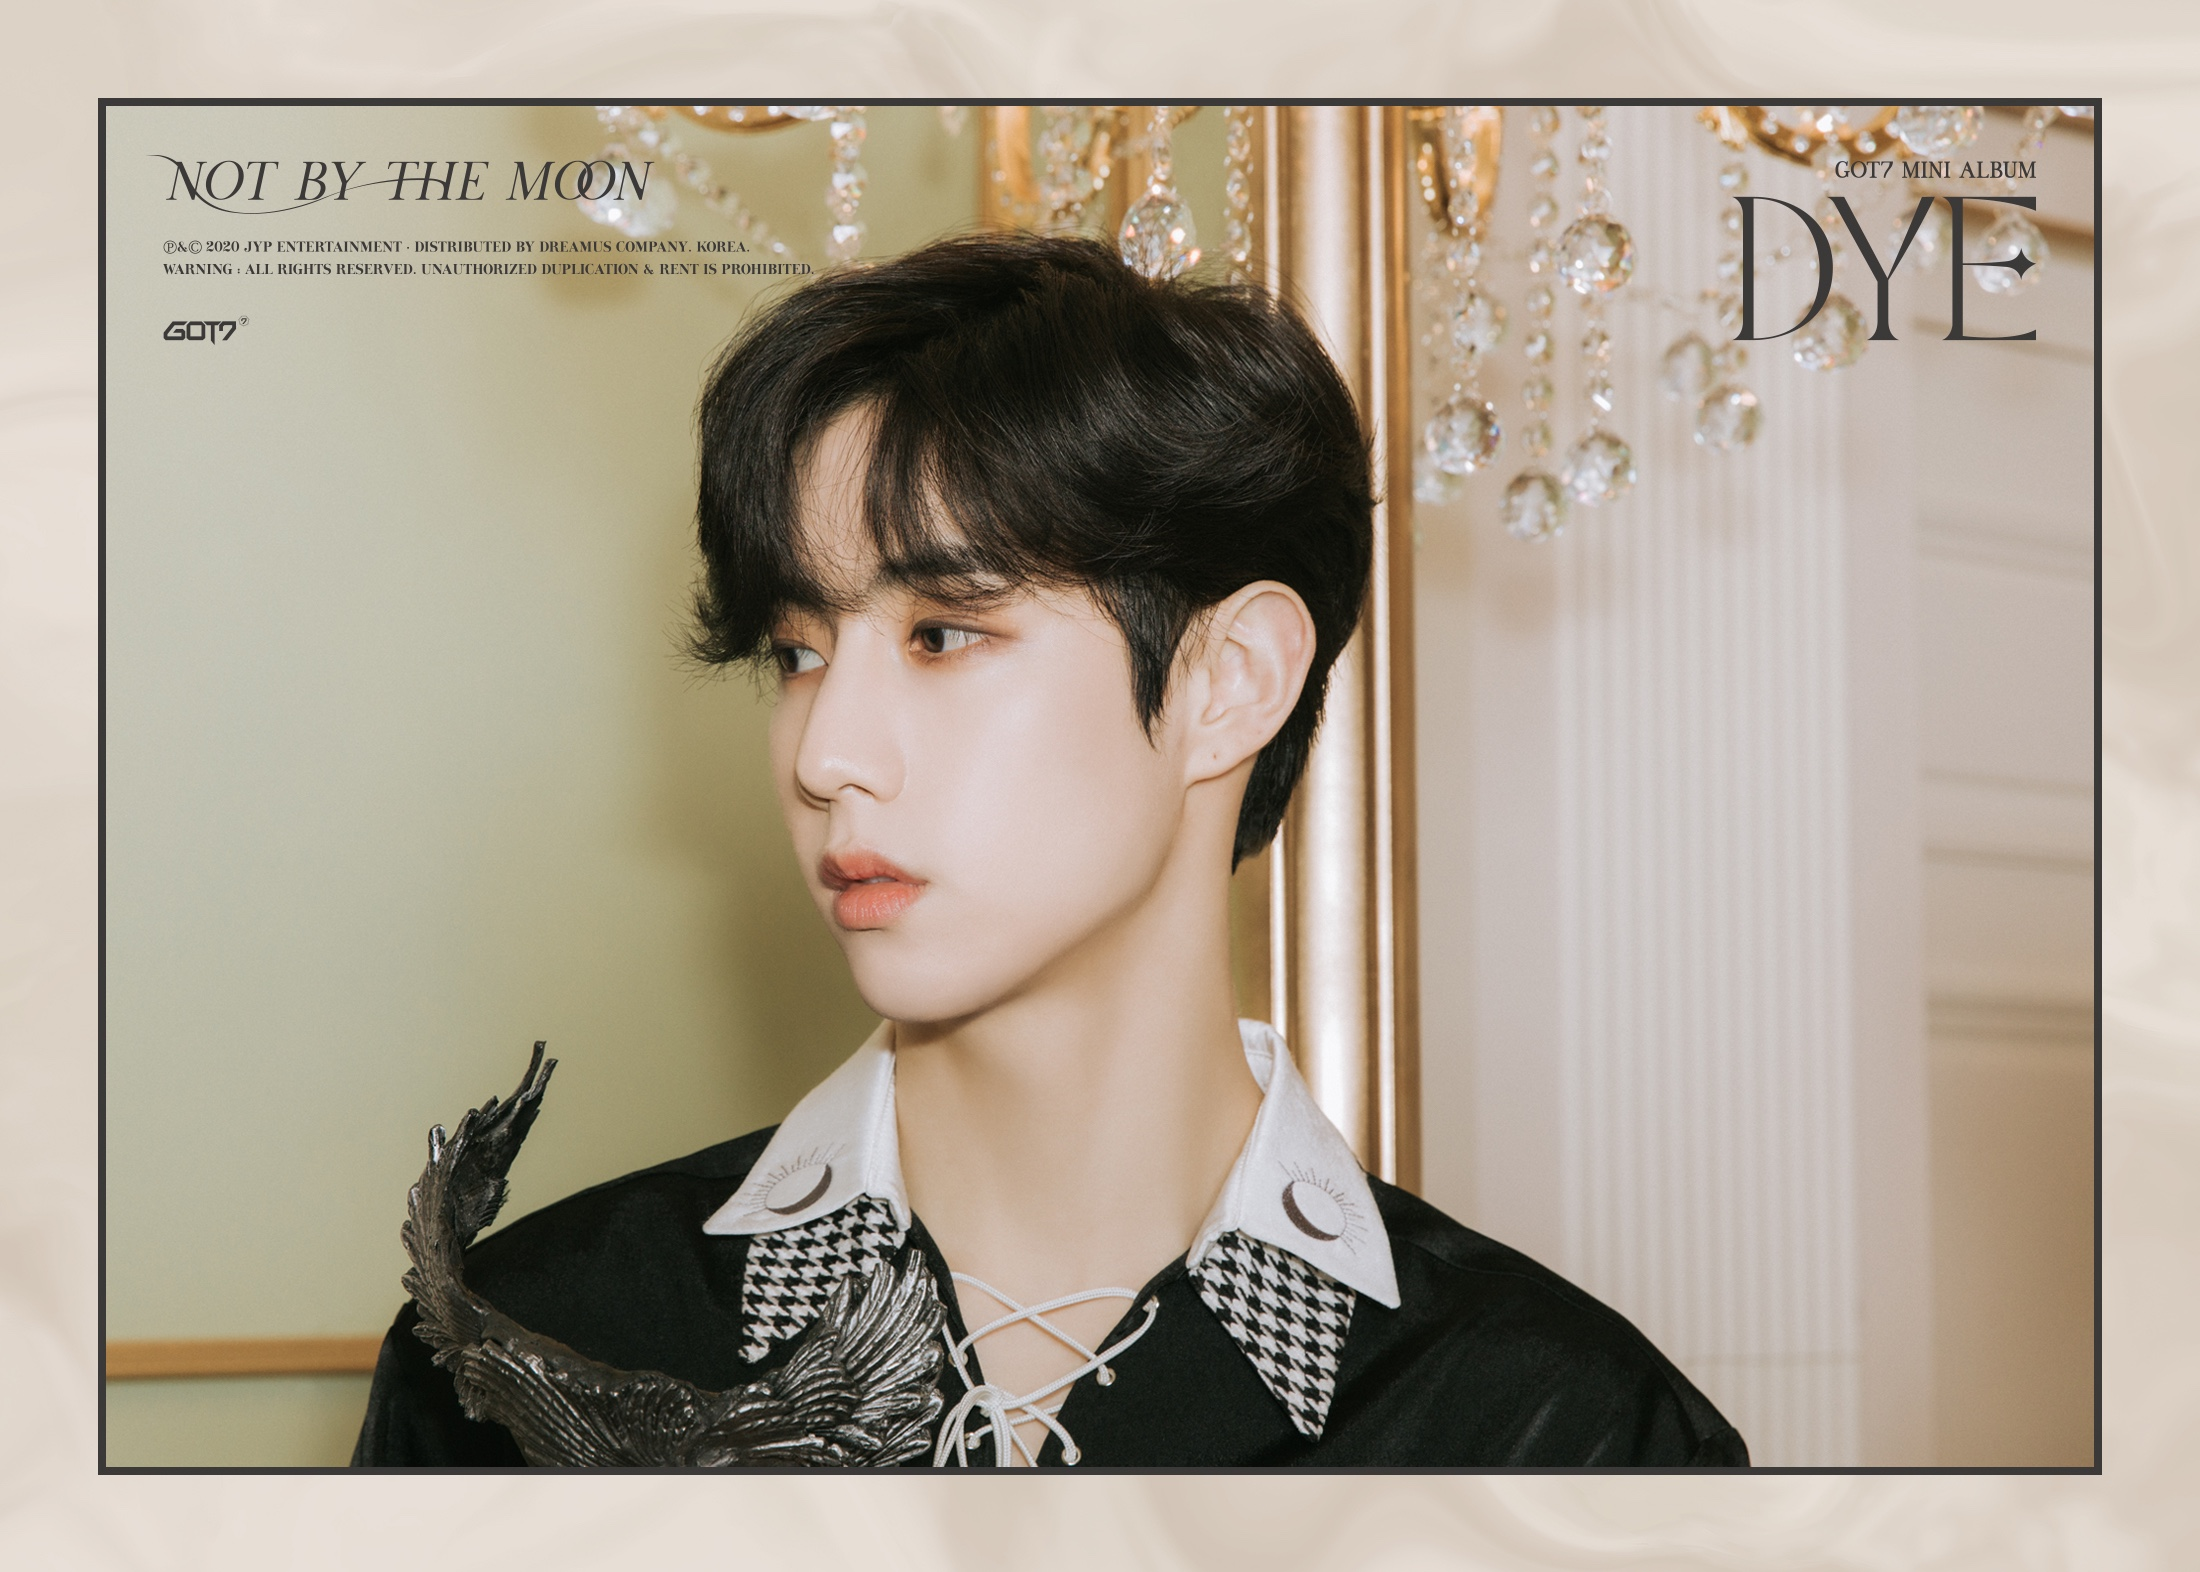 Mark 2nd teaser image for DYE comeback